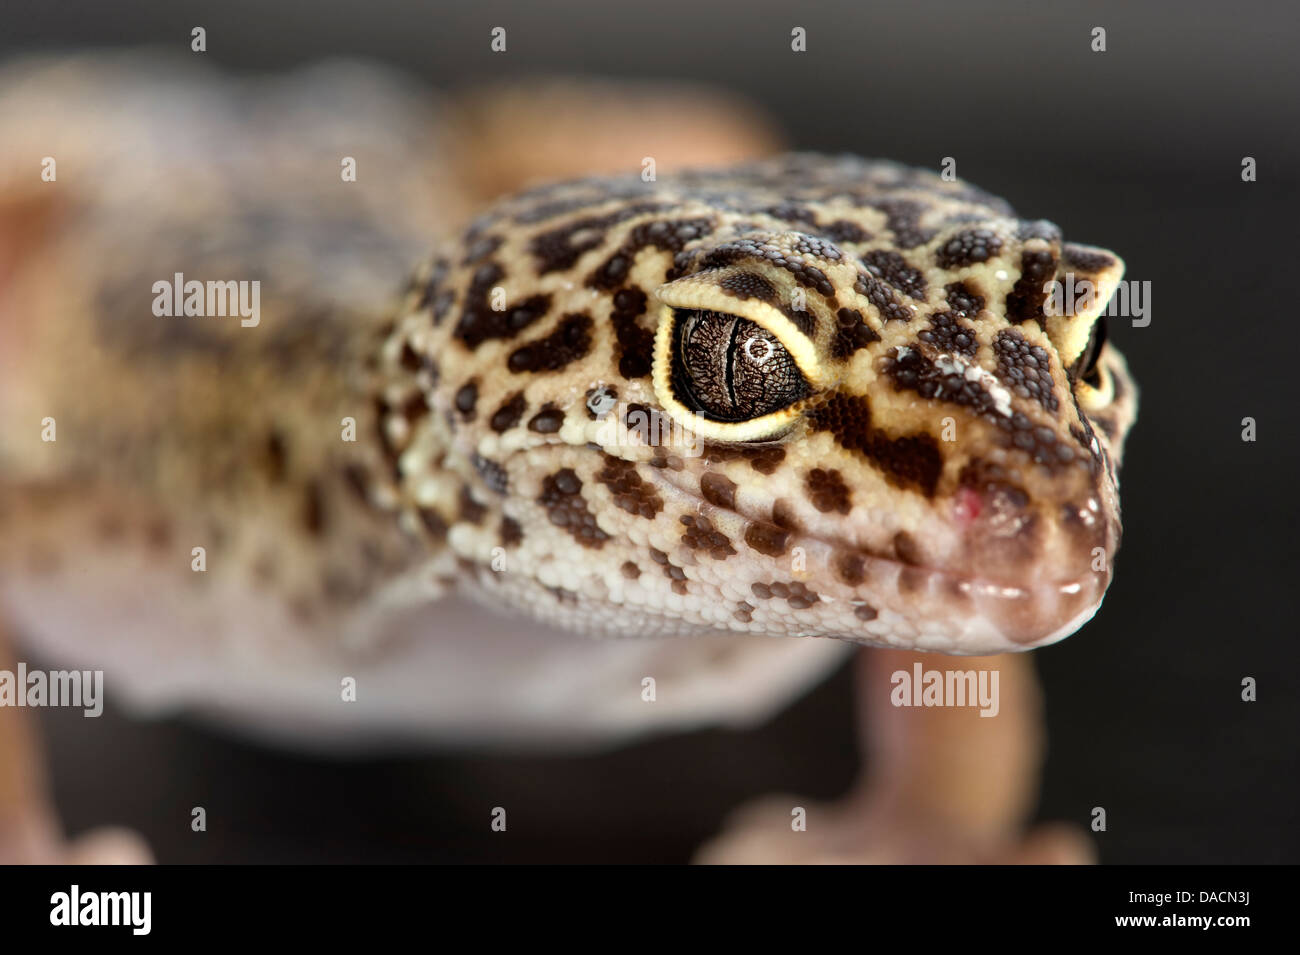 Close Up Macro Portrait Of A Leopard Gecko Eublepharis Macularius Showing Detail In Its Eyes And Nose